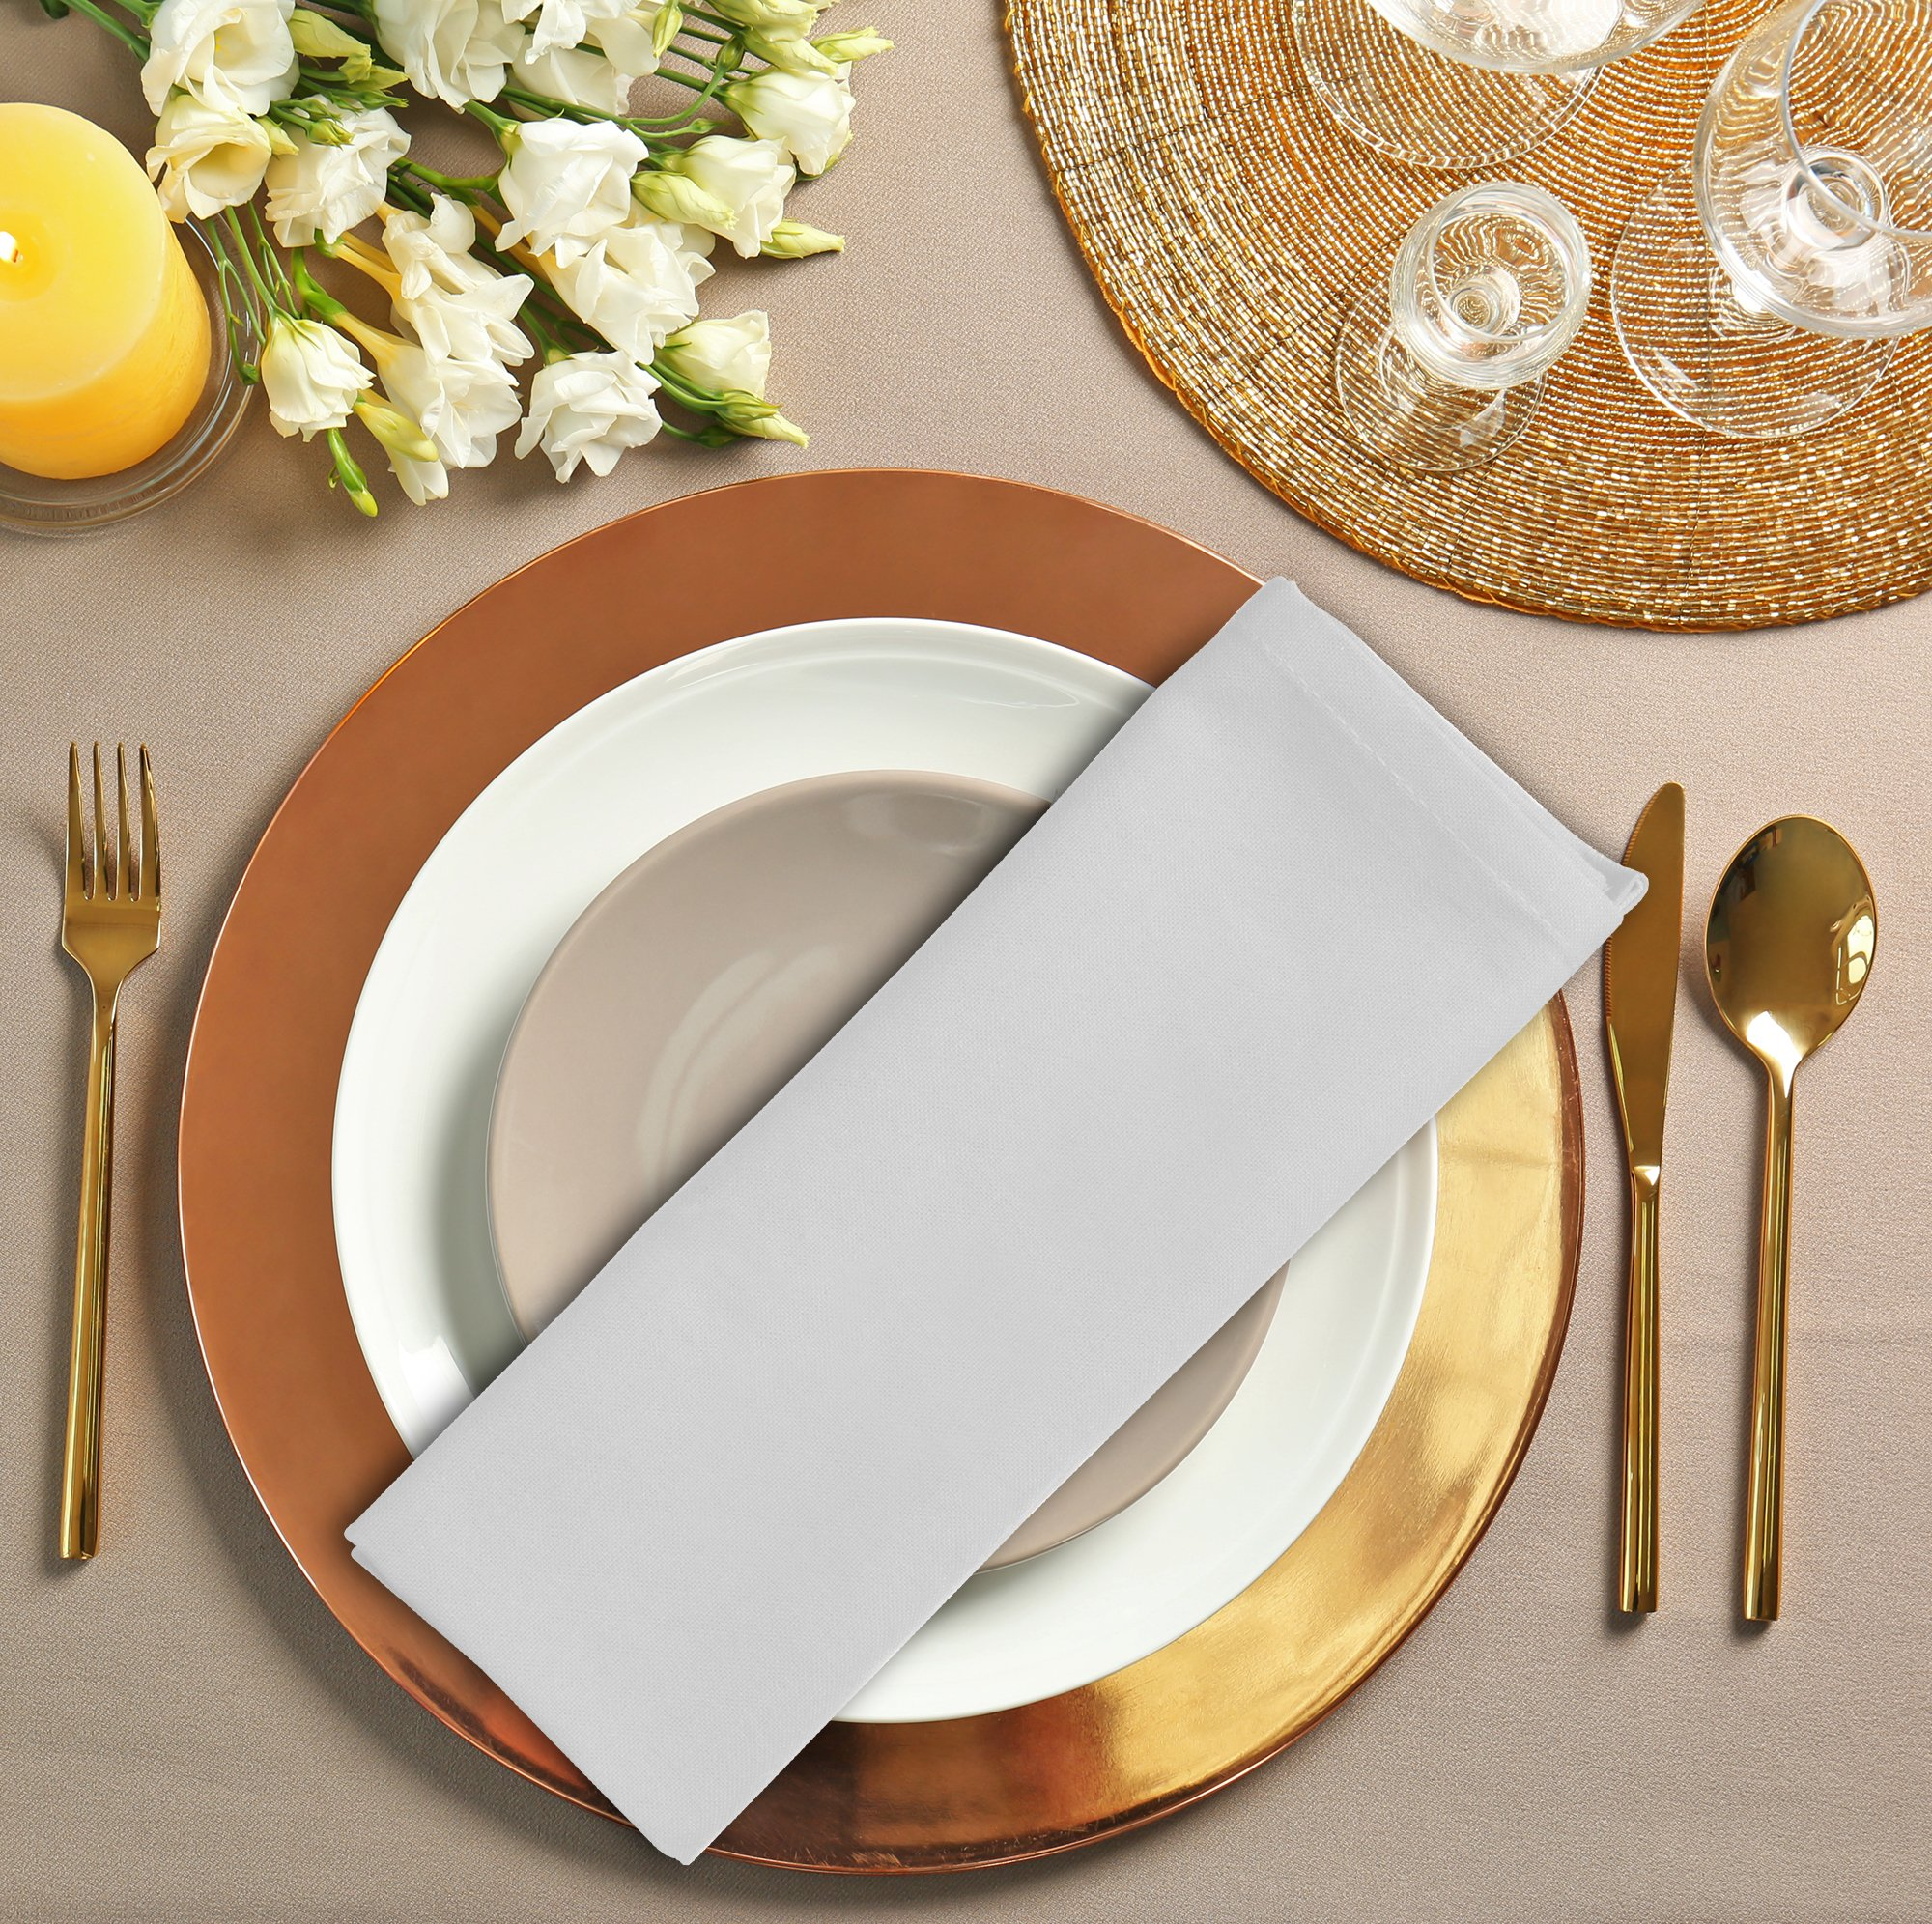 Cotton Dinner Napkins White - 12 Pack (18 inches x18 inches) Soft and Comfortable - Durable Hotel Quality - Ideal for Events and Regular Home Use - by Utopia Bedding by Utopia Bedding (Image #6)